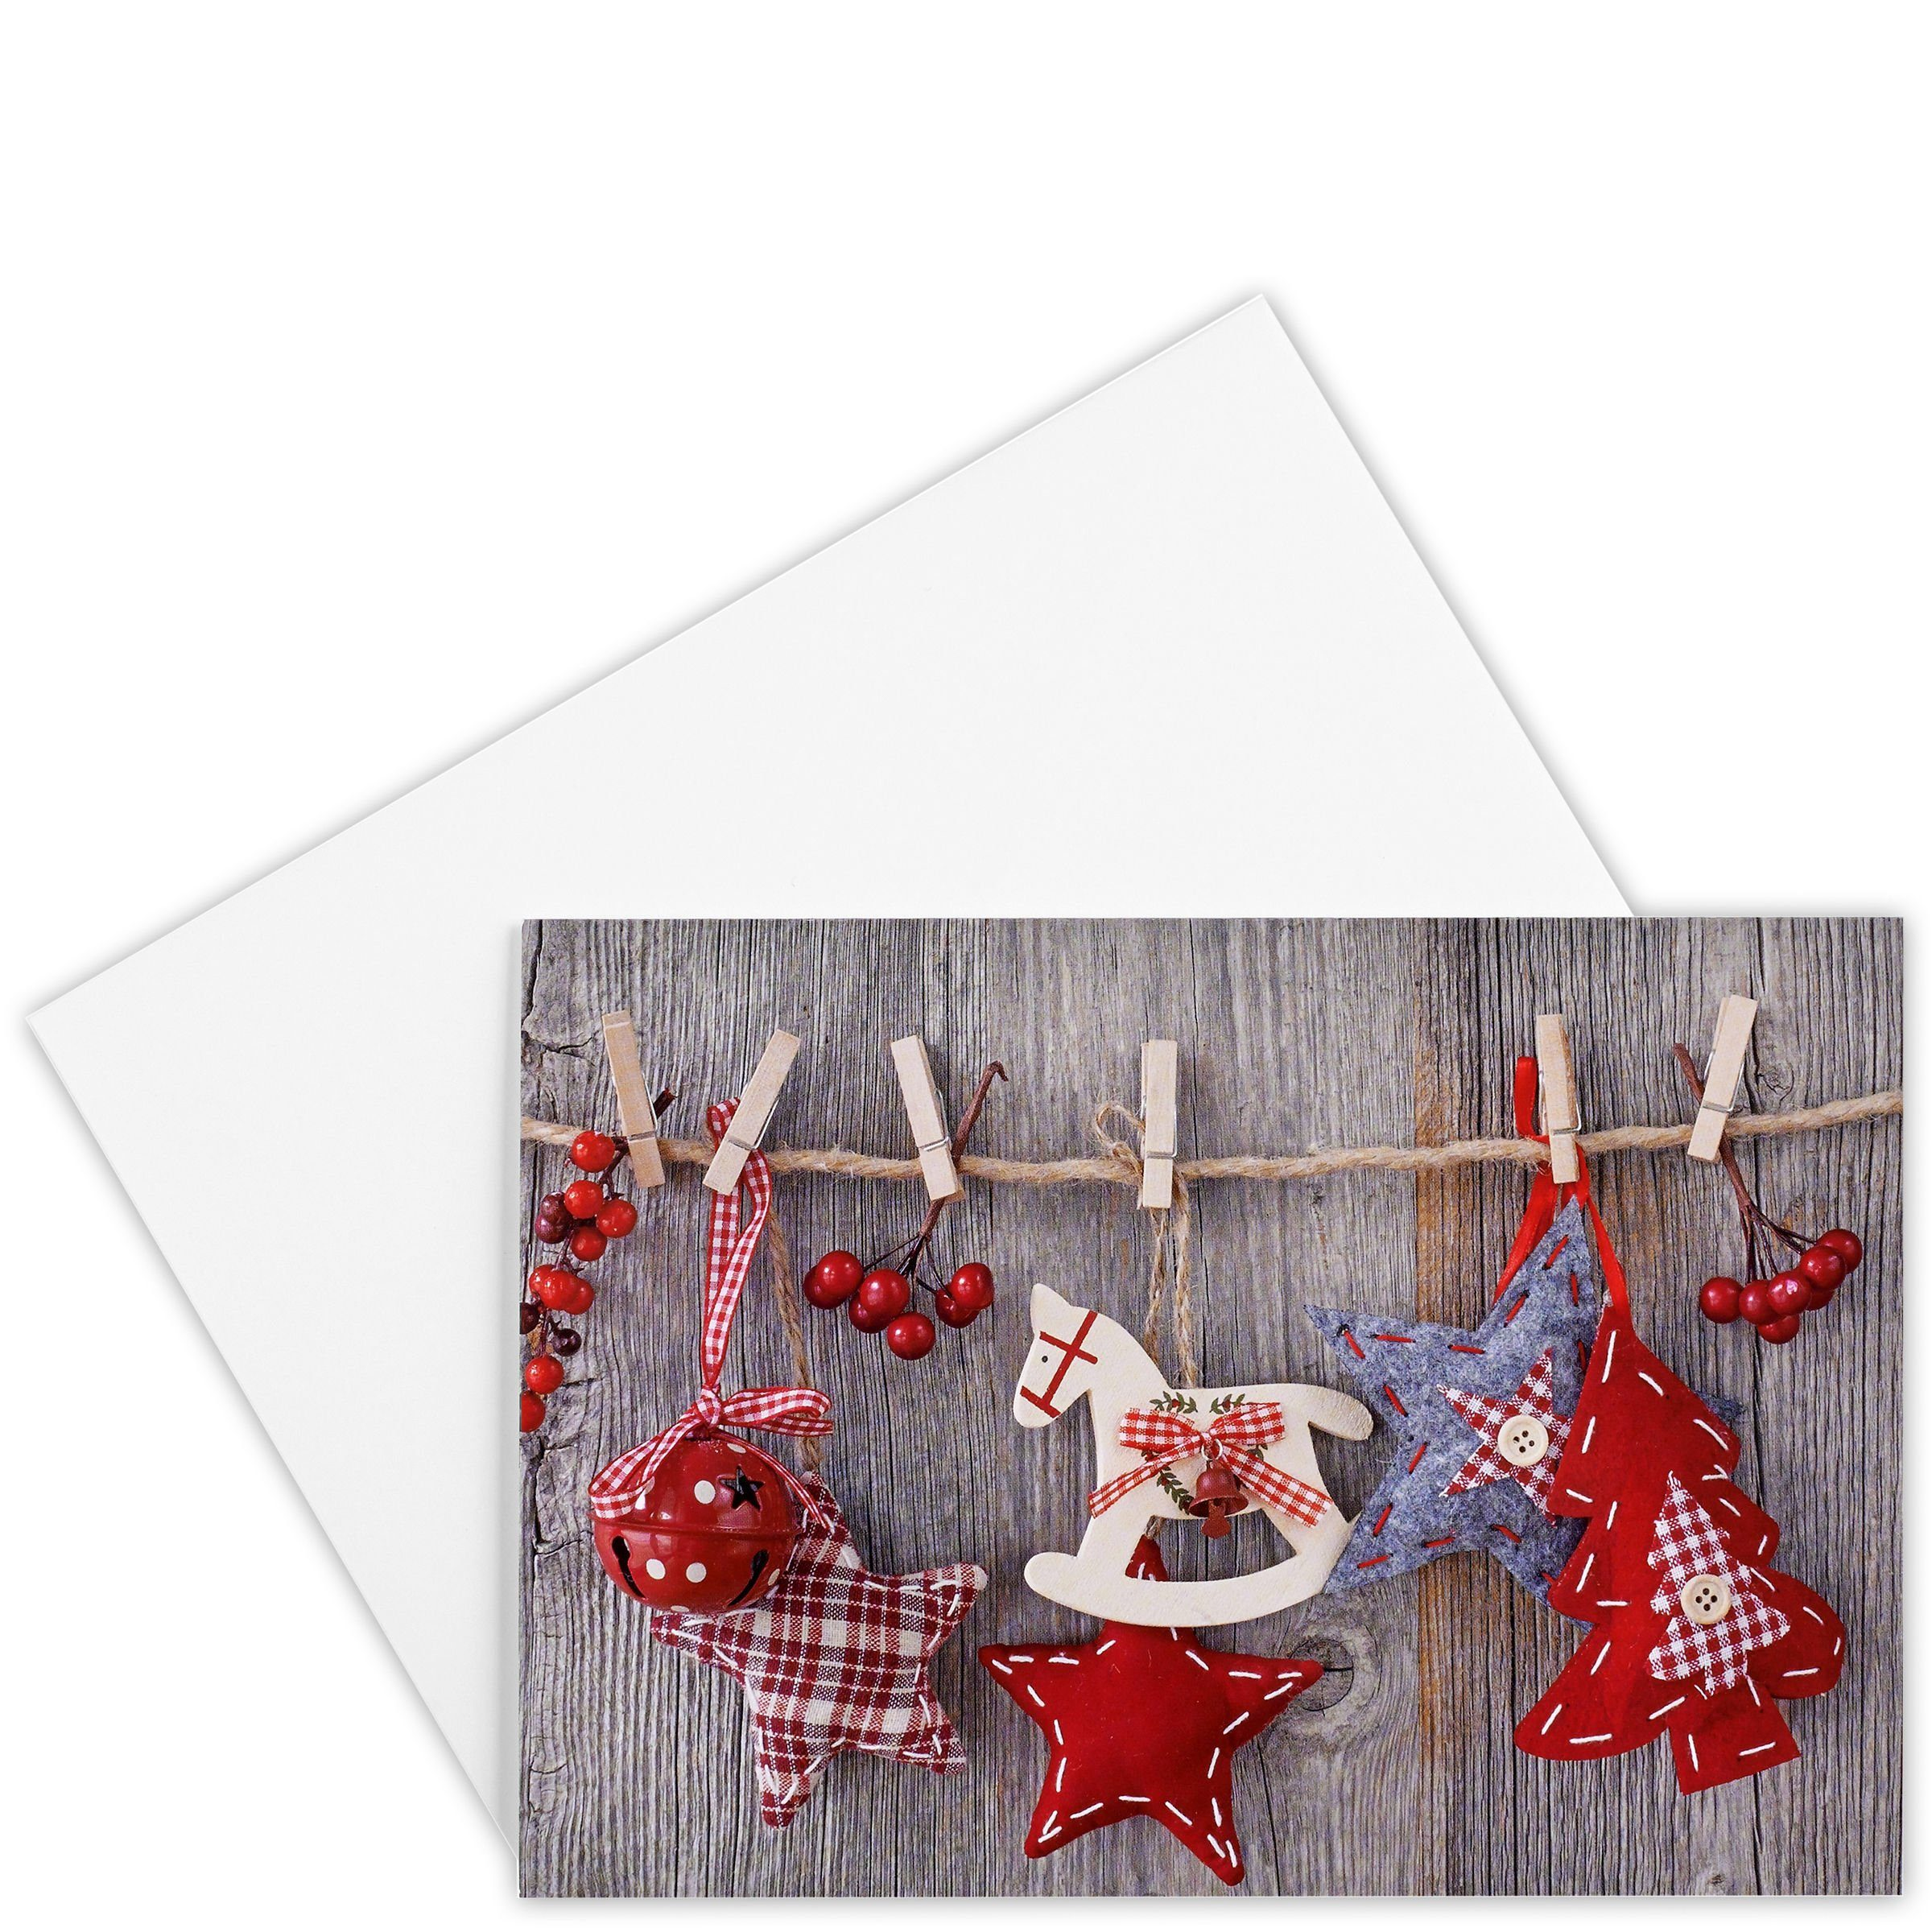 BUTLERS CARD »Merry Christmas«